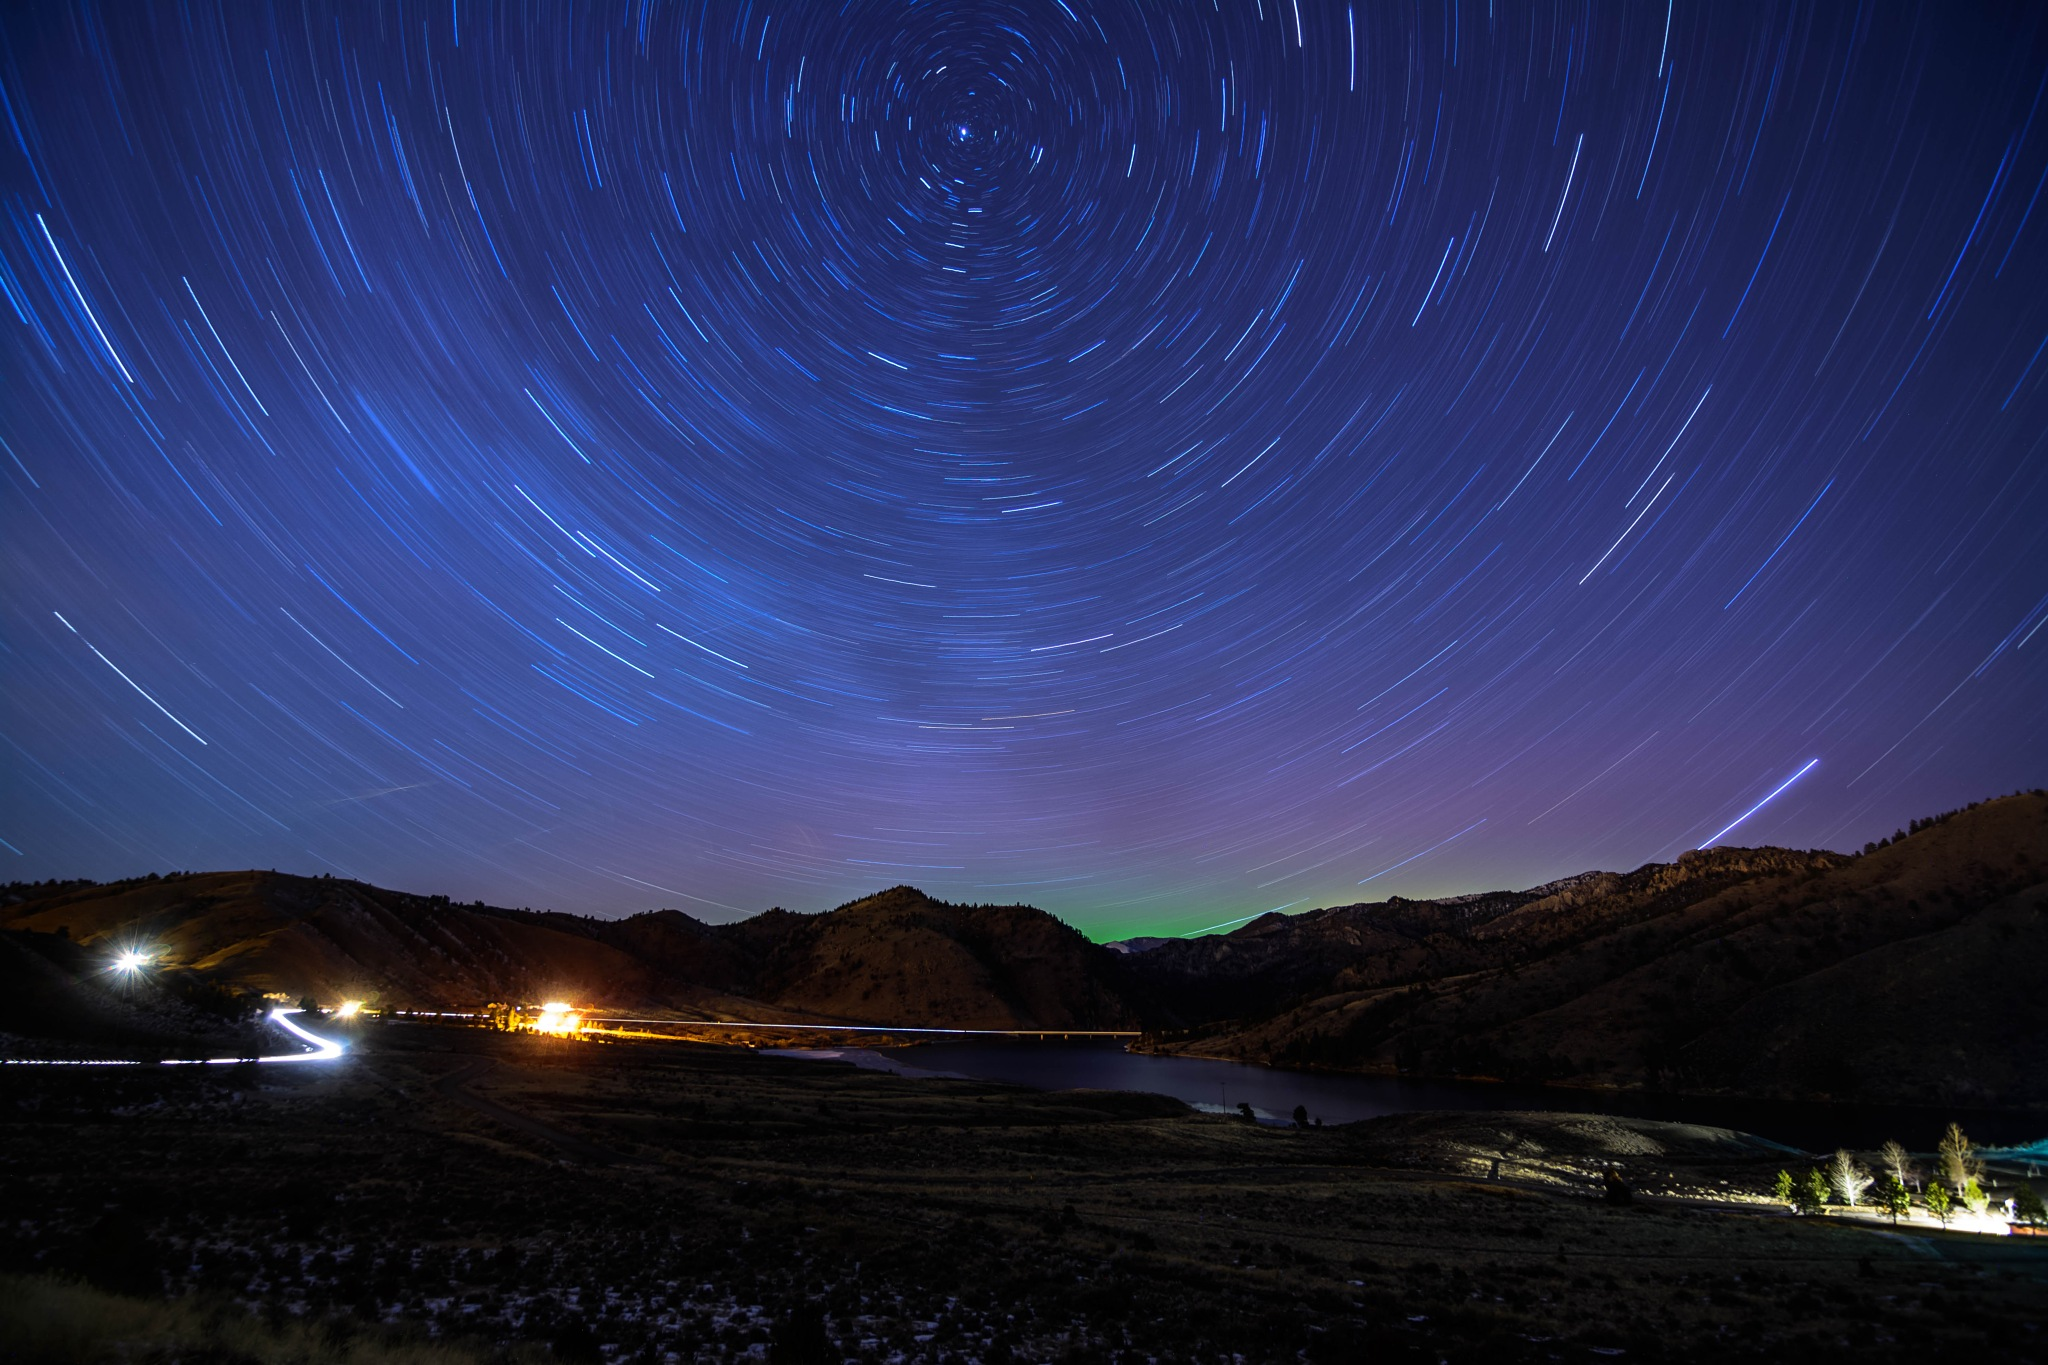 Star Wheels and Auroras by Tory L. Stephens